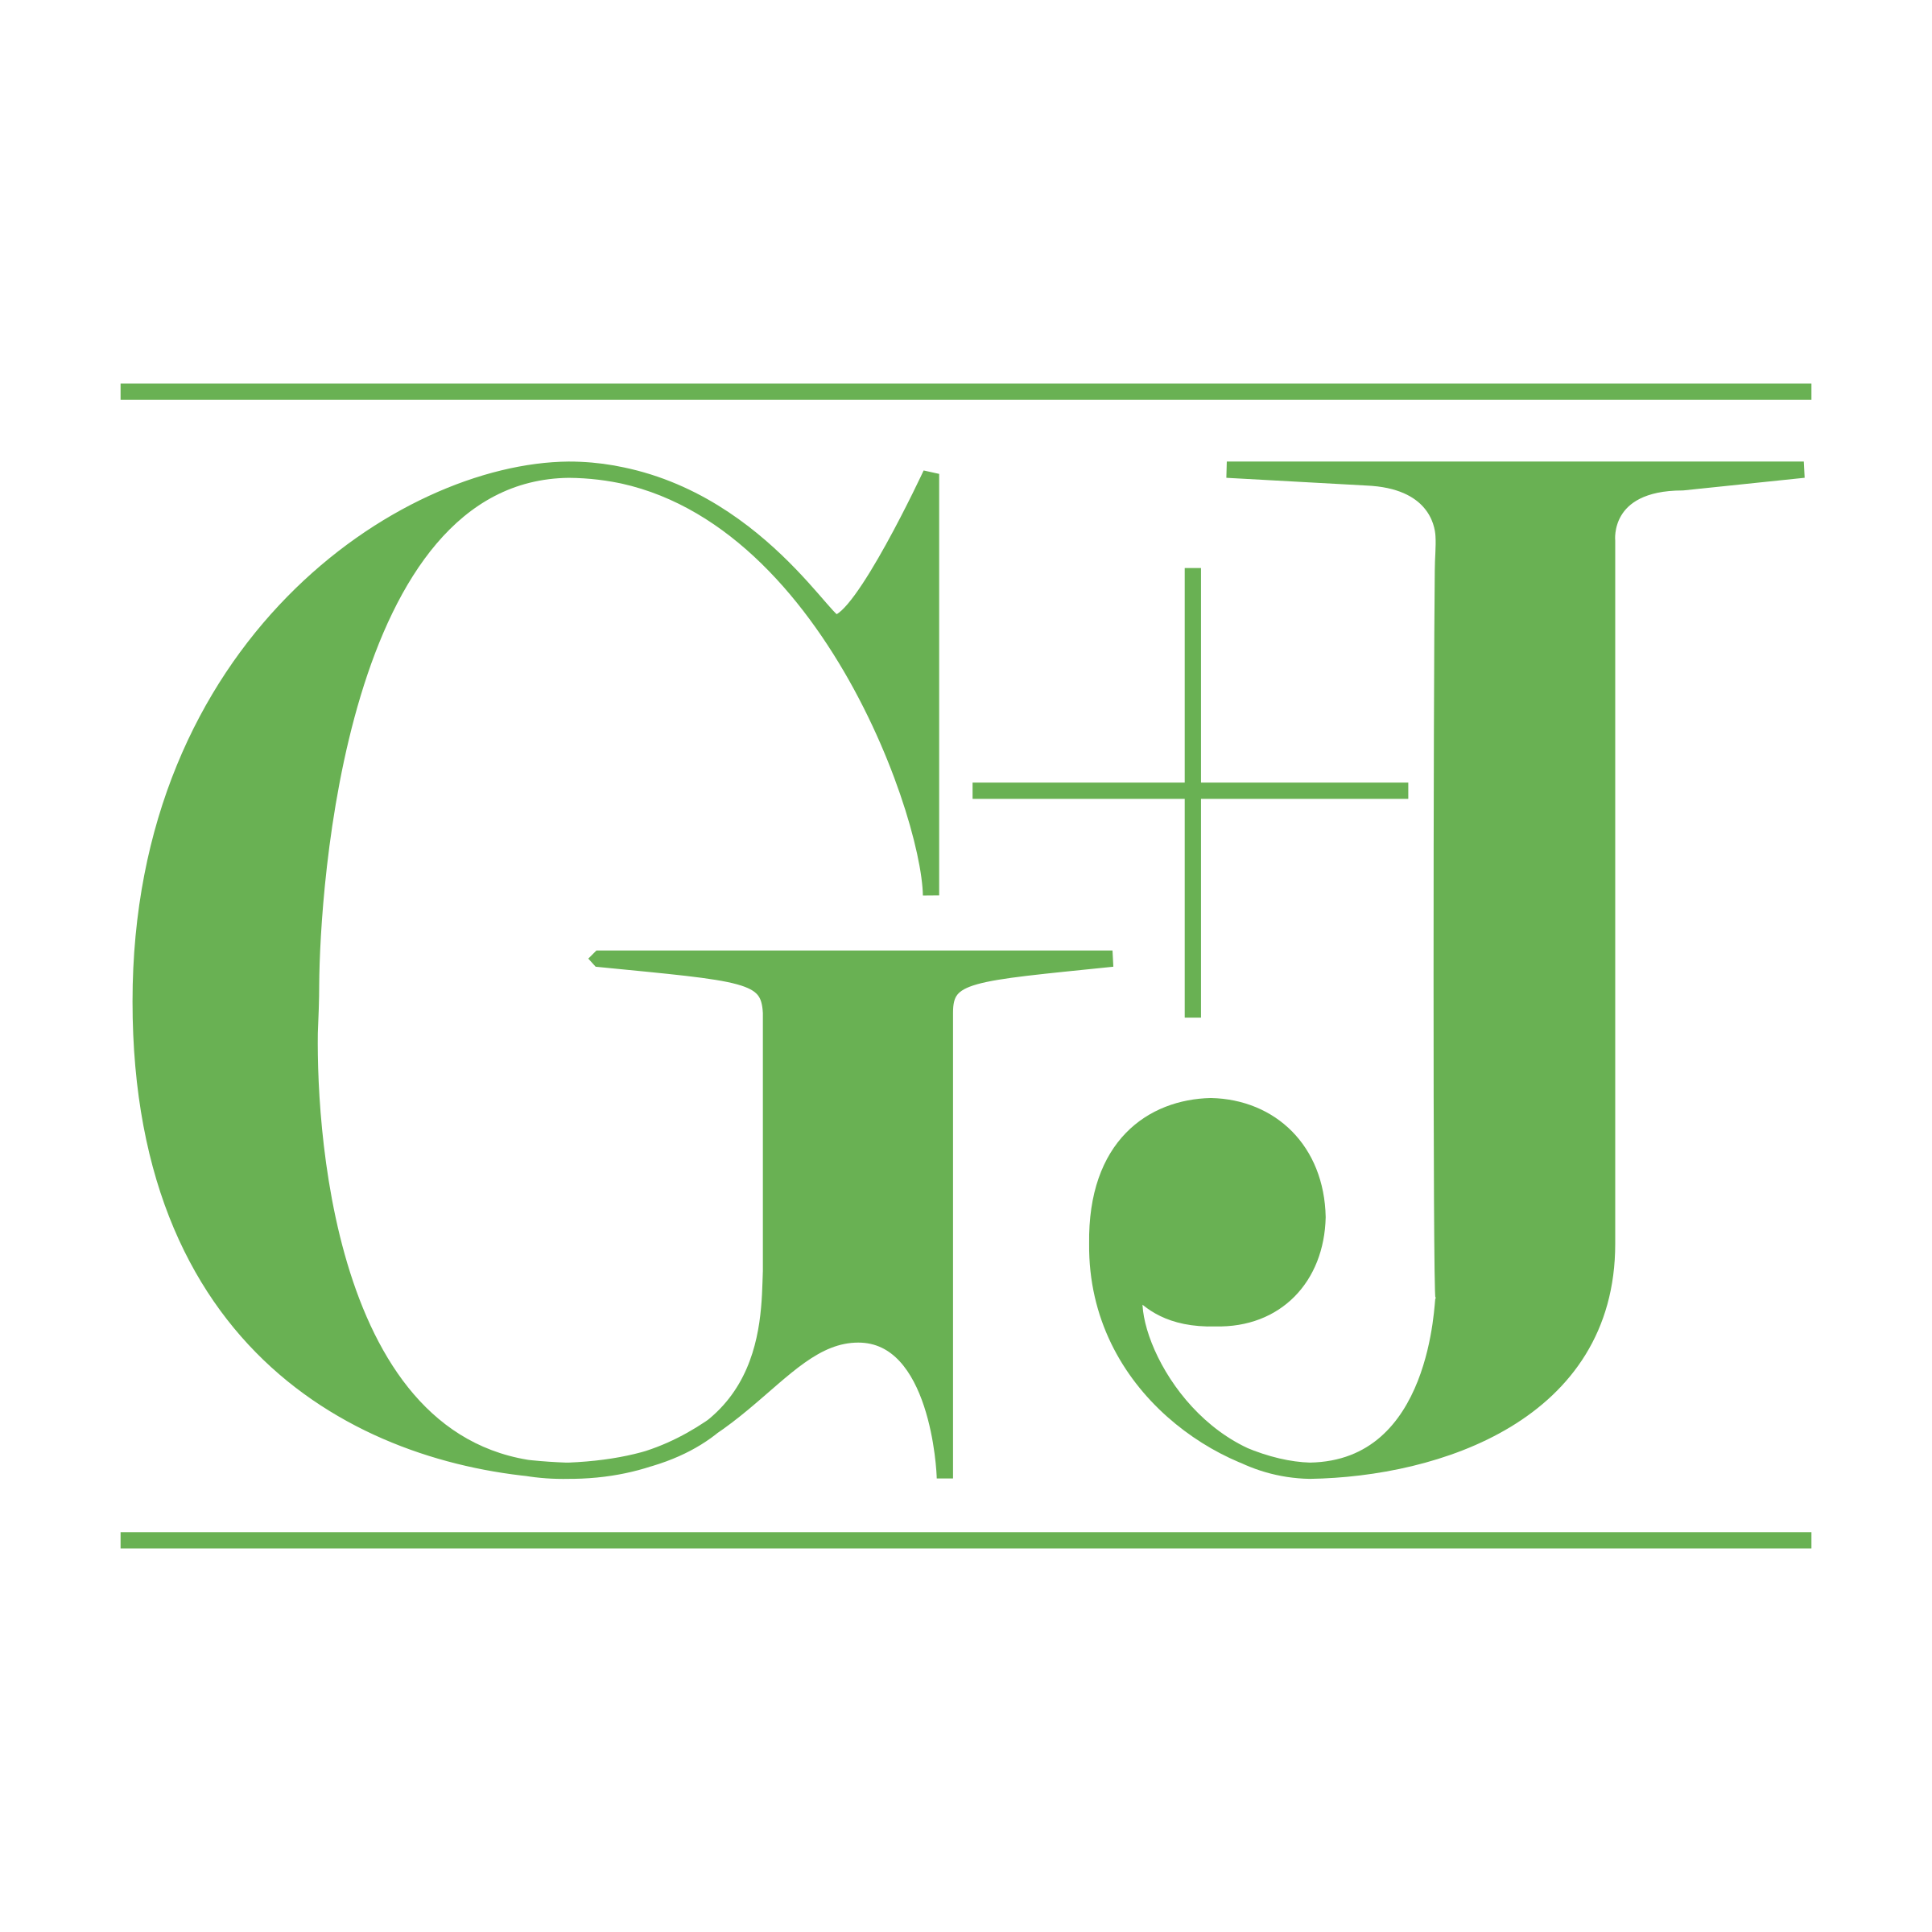 J transparent green. G logo png svg